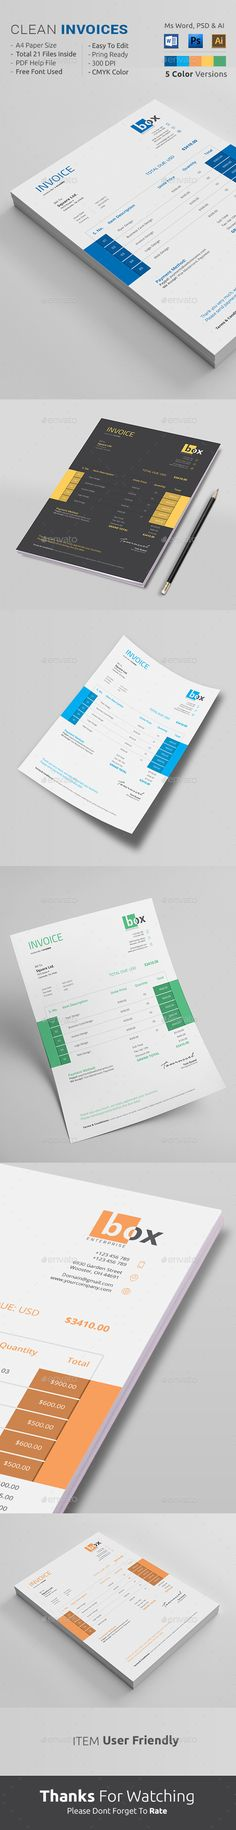 Download Simple and Creative Invoice Template Free Print - download invoice